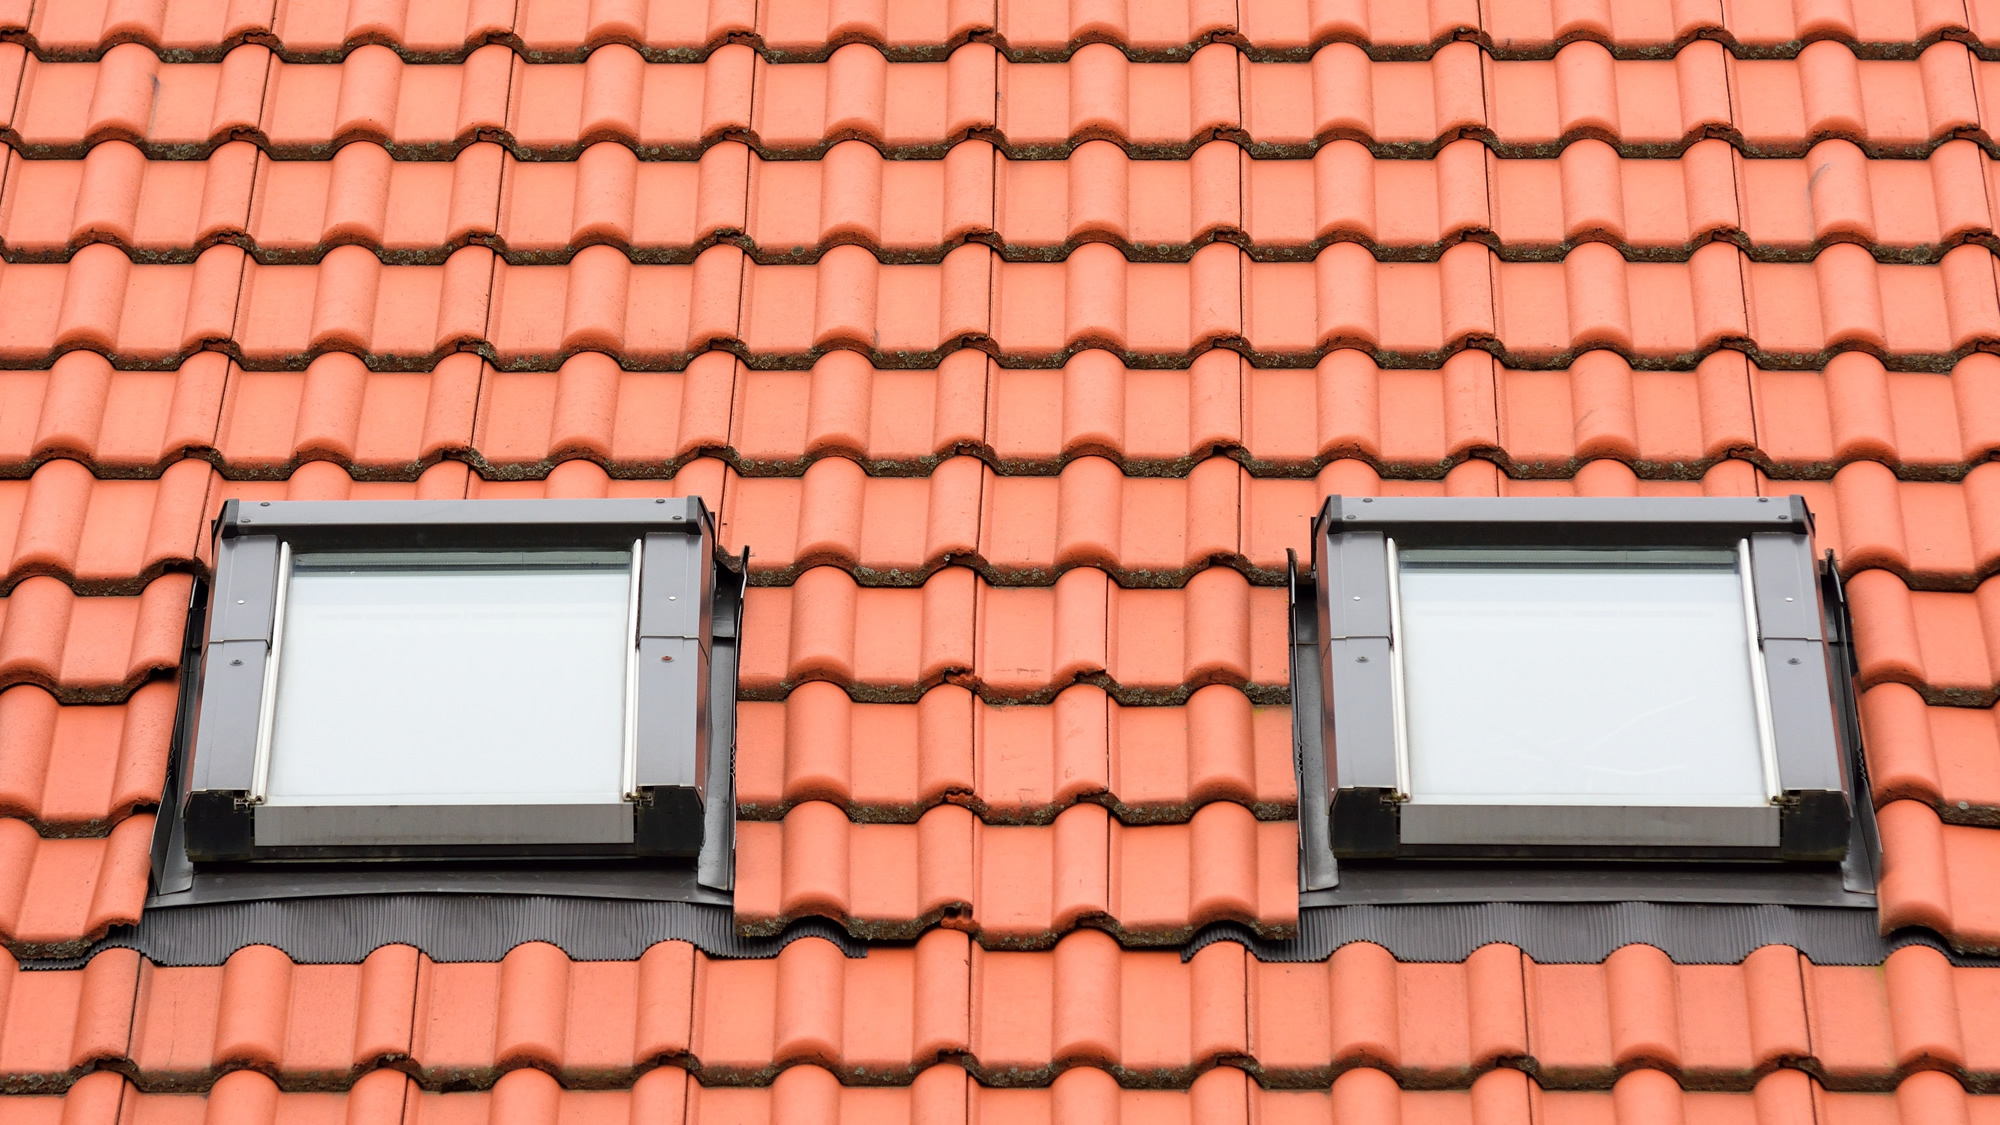 Exterior view of two new side by side skylights on tile roof